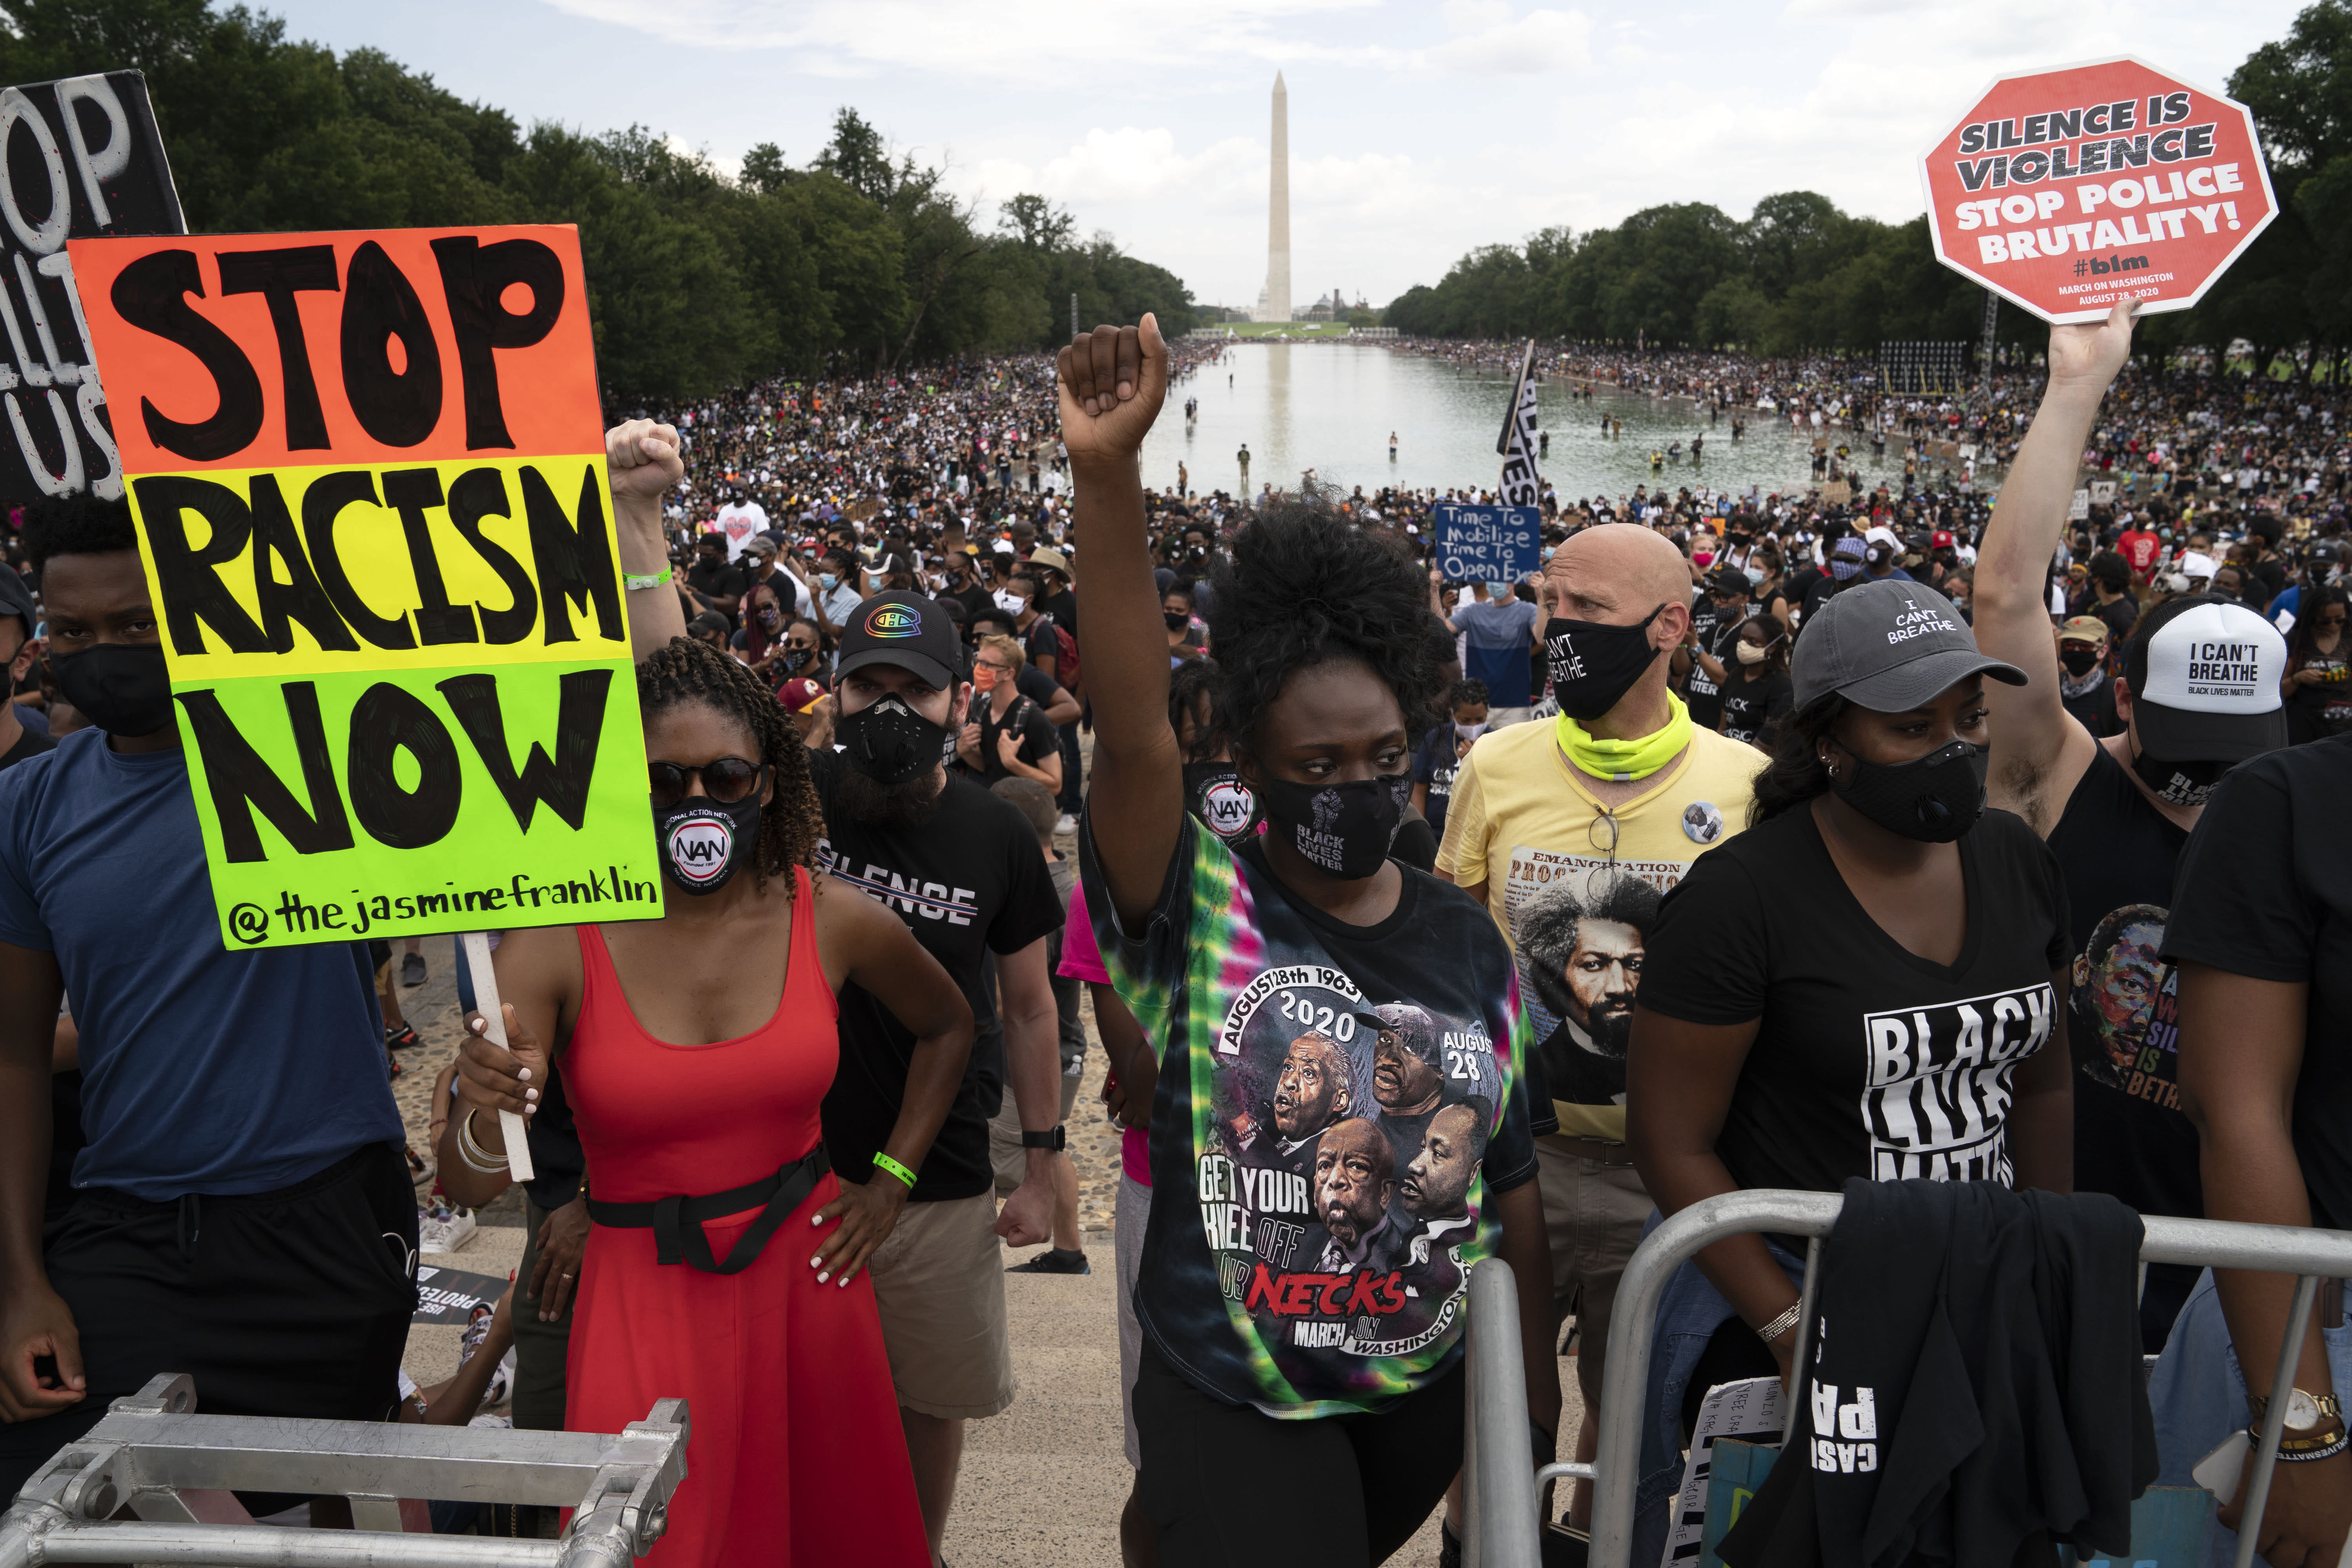 """Demonstrators rally at Lincoln Memorial during the March on Washington, Friday Aug. 28, 2020, on the 57th anniversary of the Rev. Martin Luther King Jr.'s """"I Have A Dream"""" speech. (AP Photo/Jose Luis Magana)"""